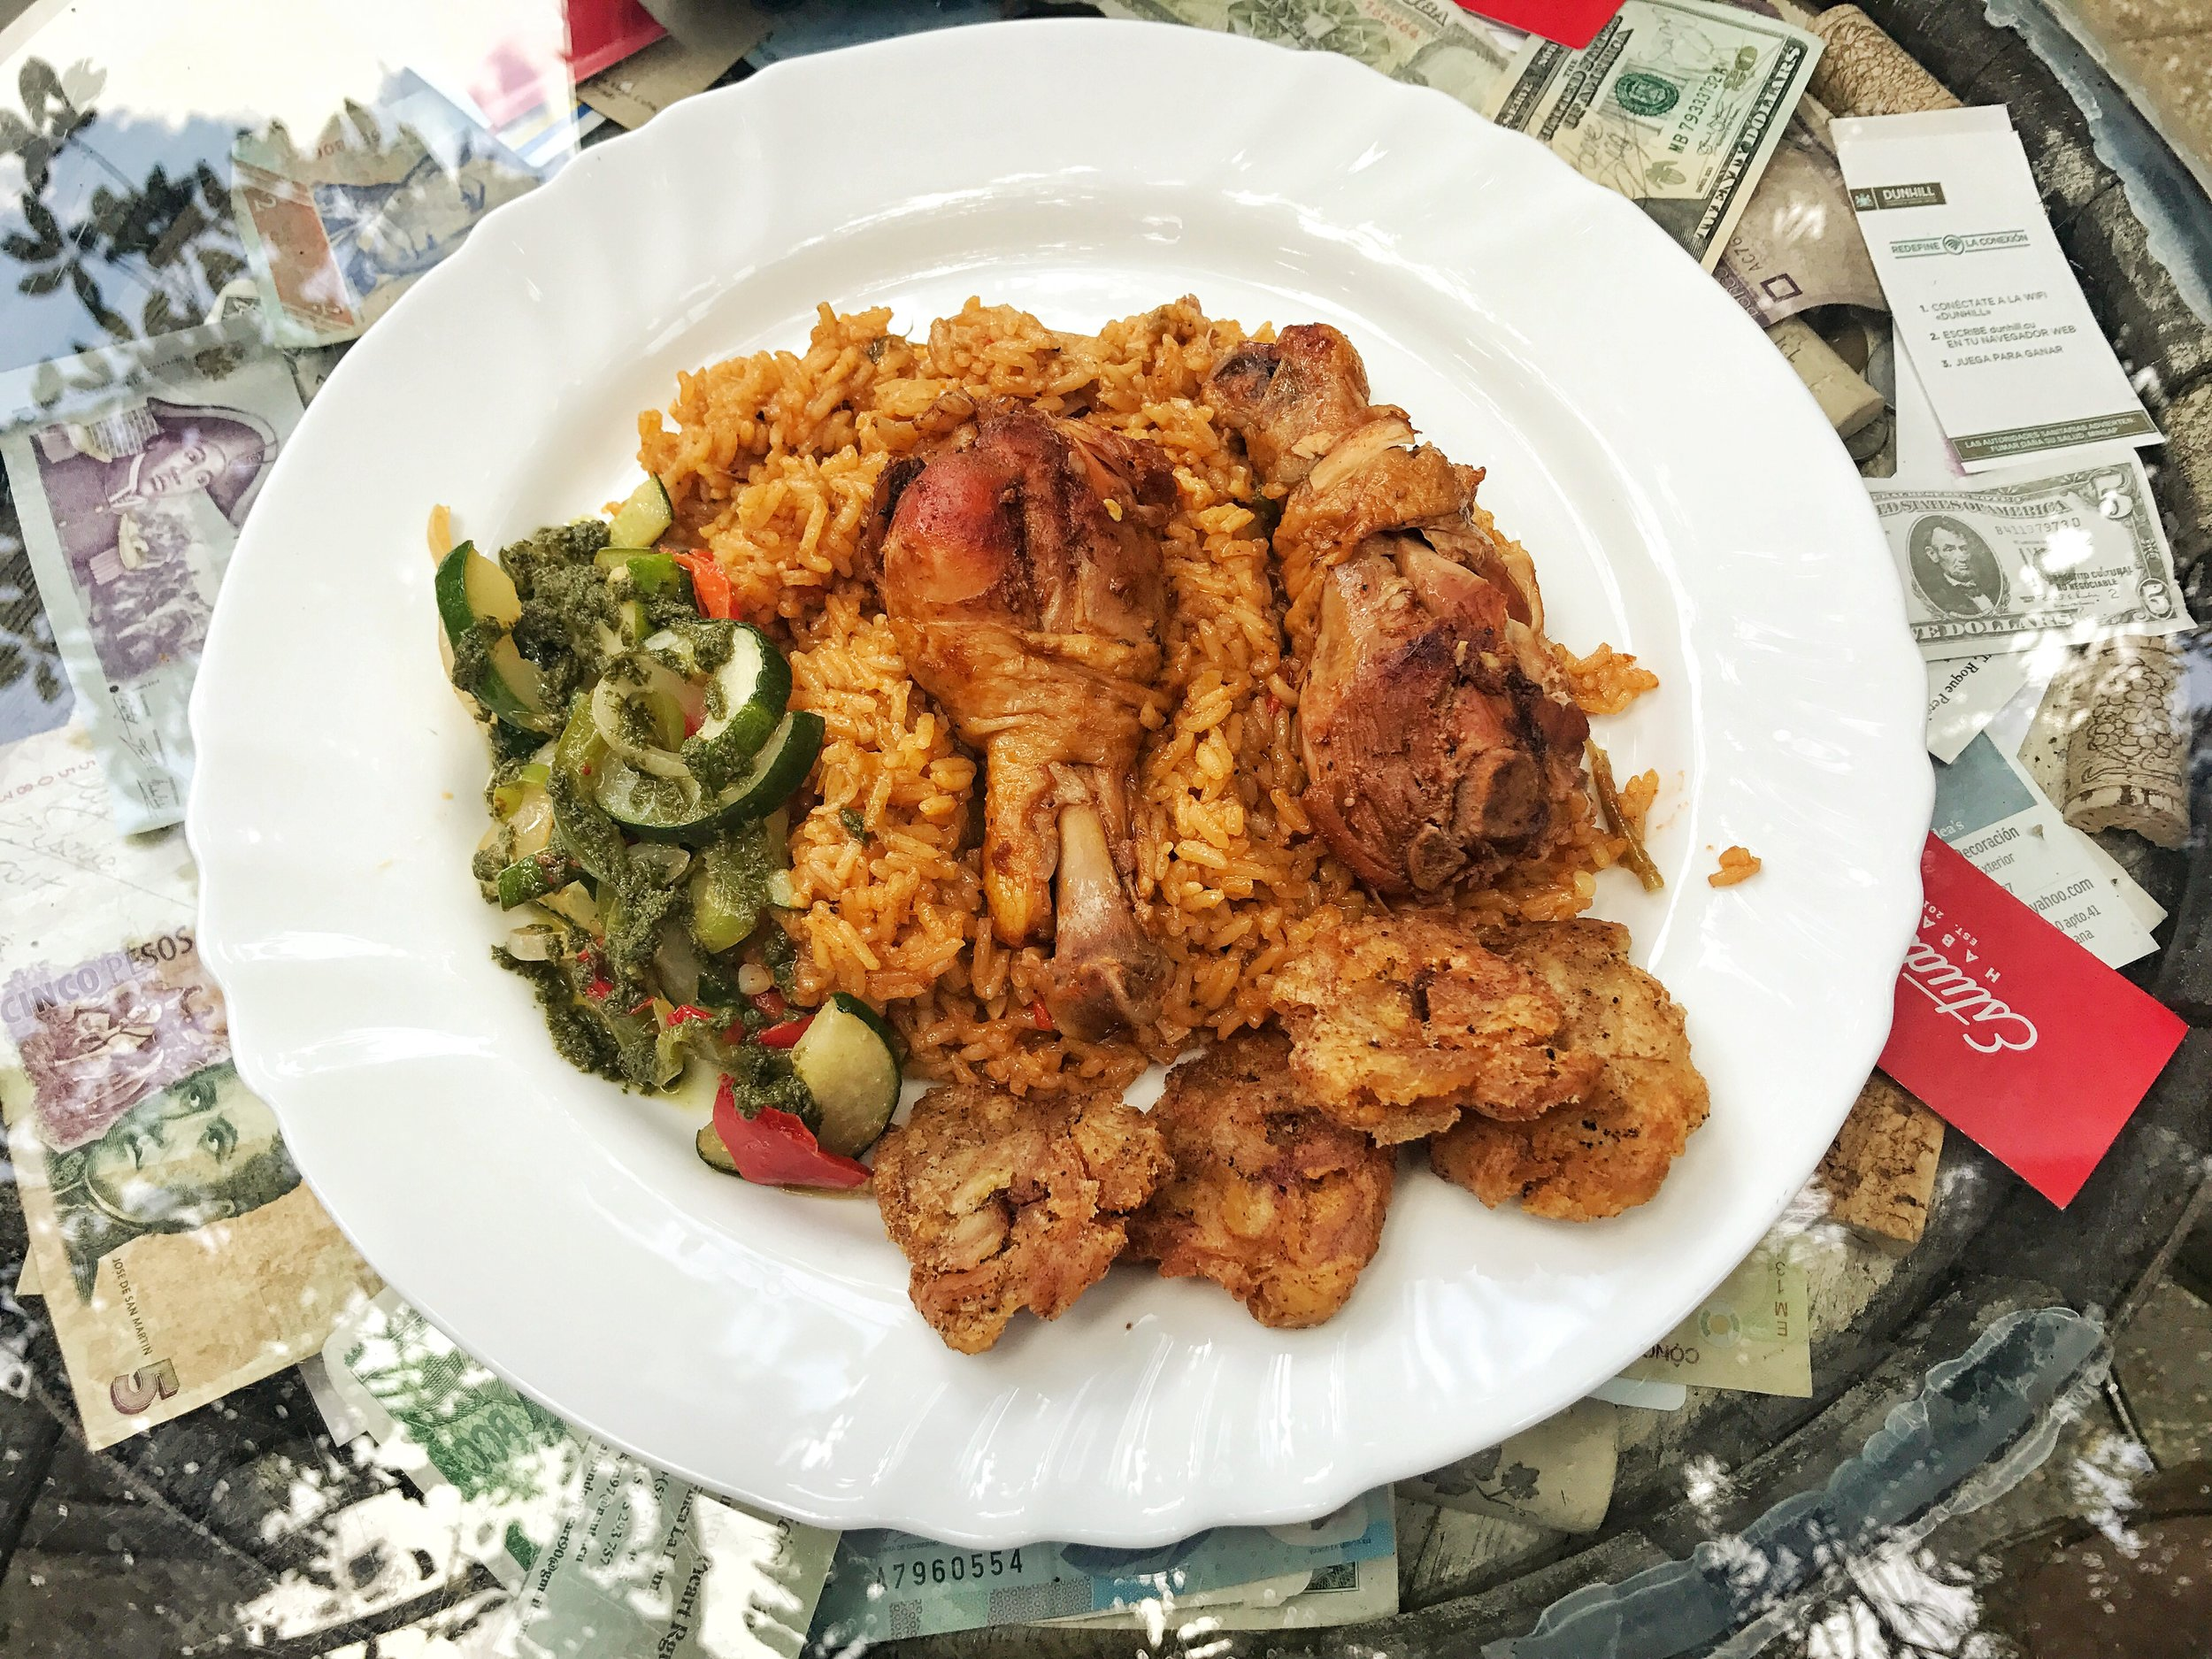 Roasted chicken legs with tostones, paella like rice, vegetables with a chimmichuri sauce